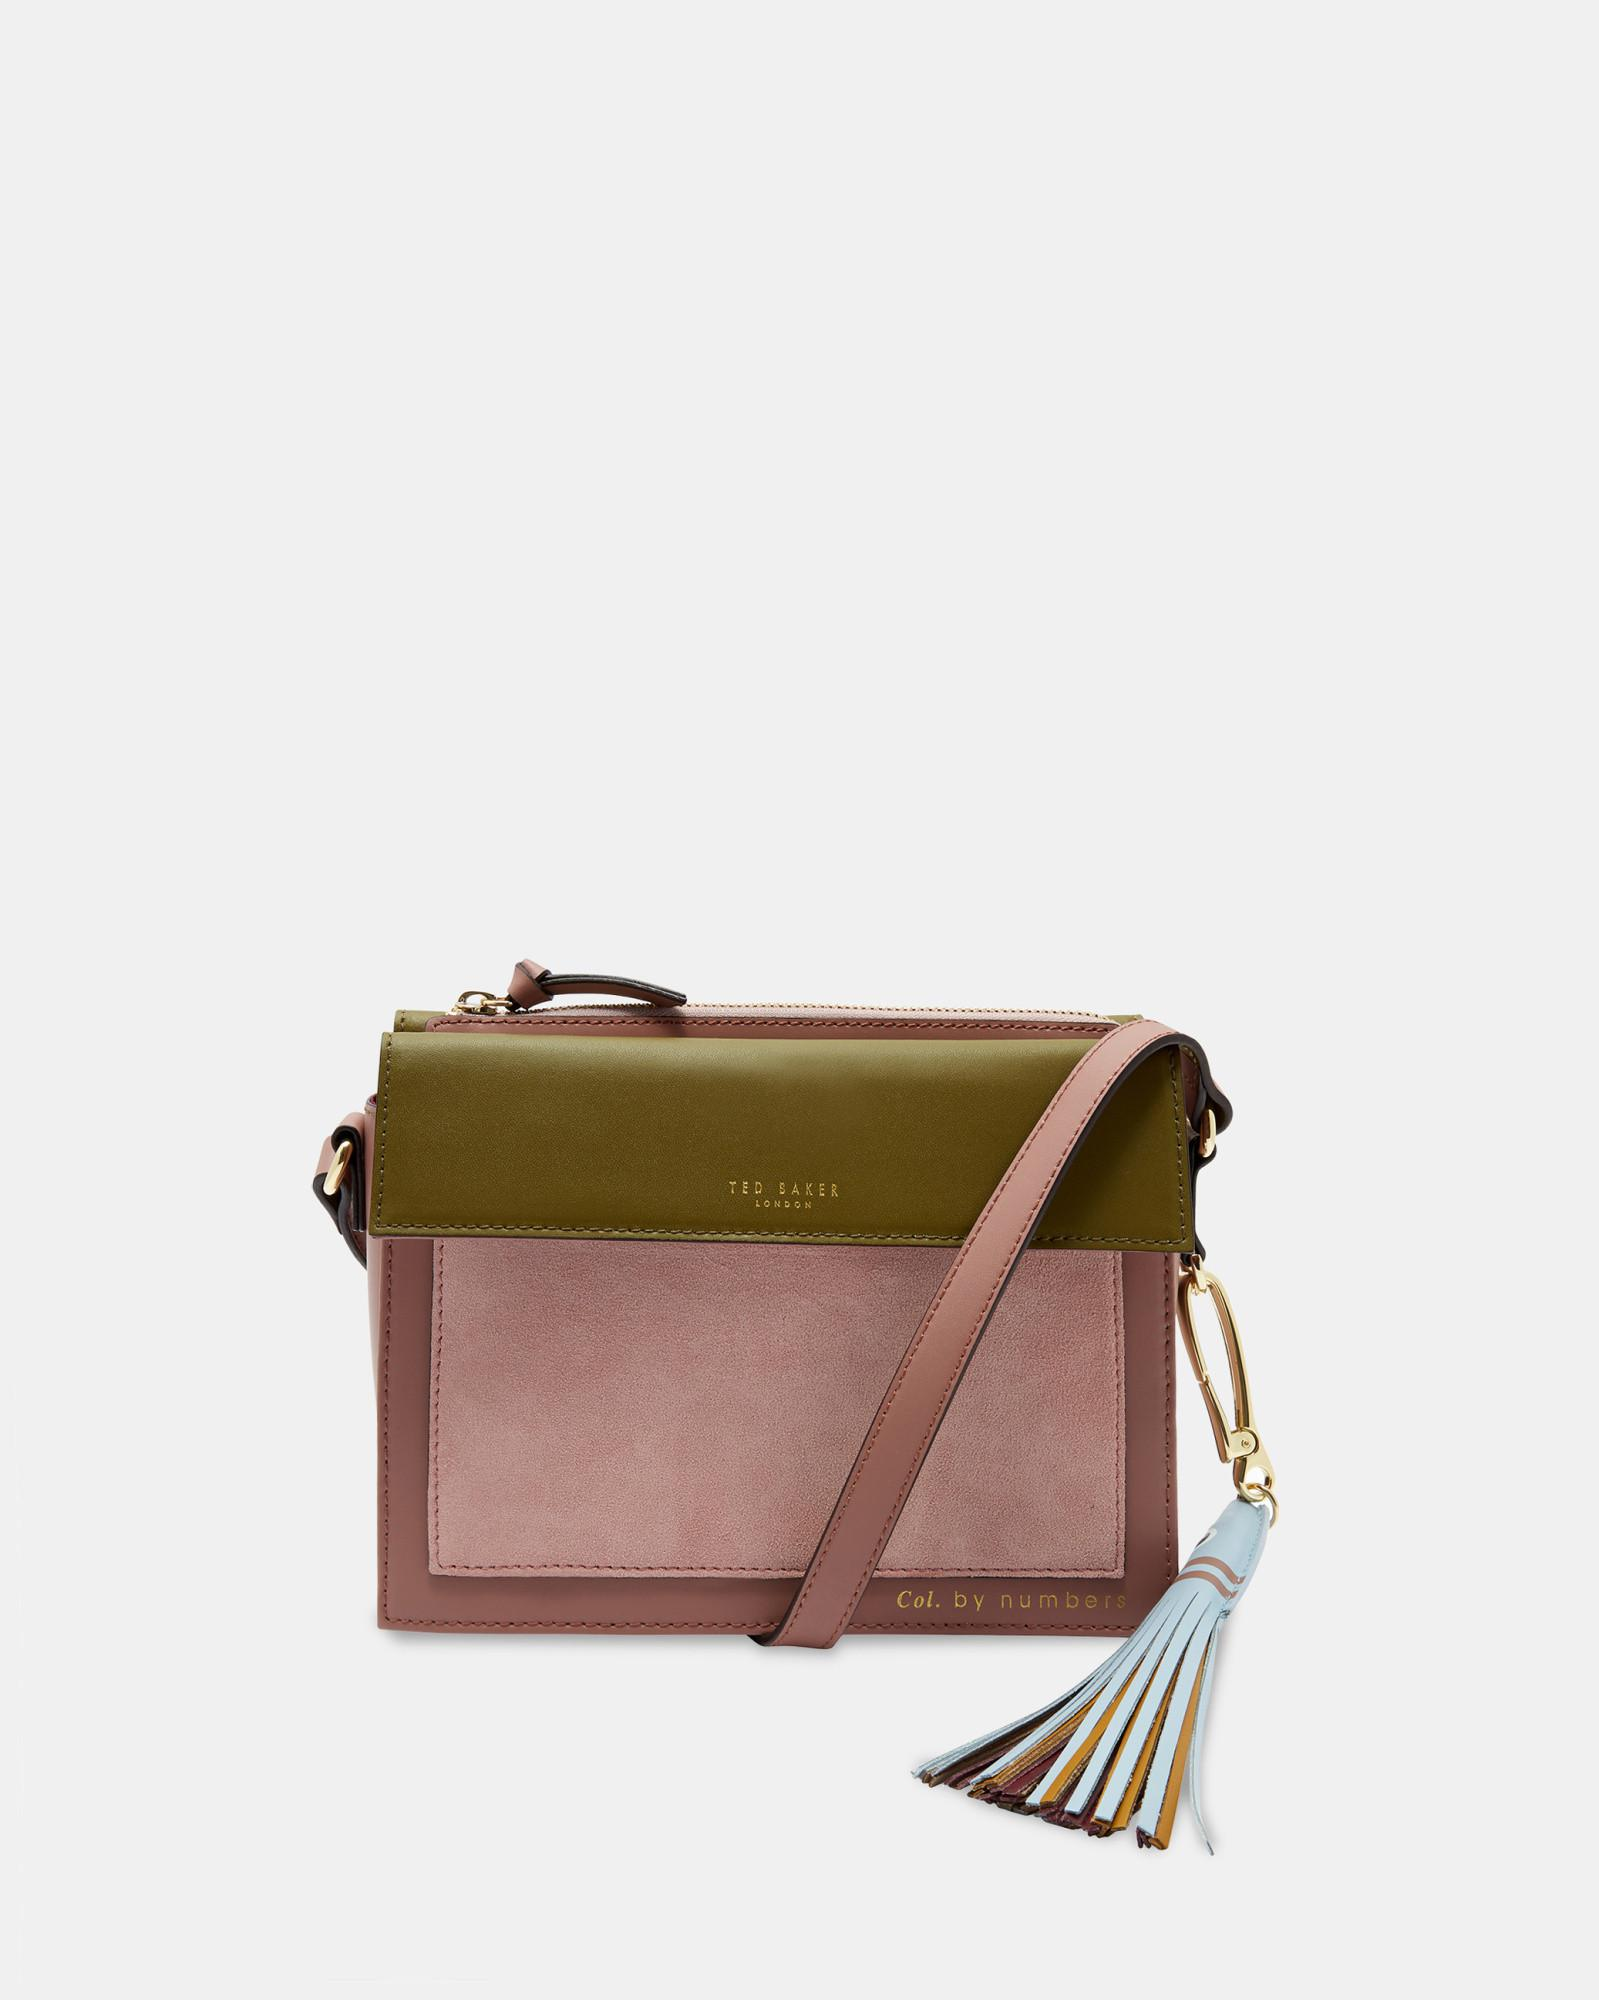 6f4313e2a Ted Baker Leather Cross Body Bag in Pink - Lyst